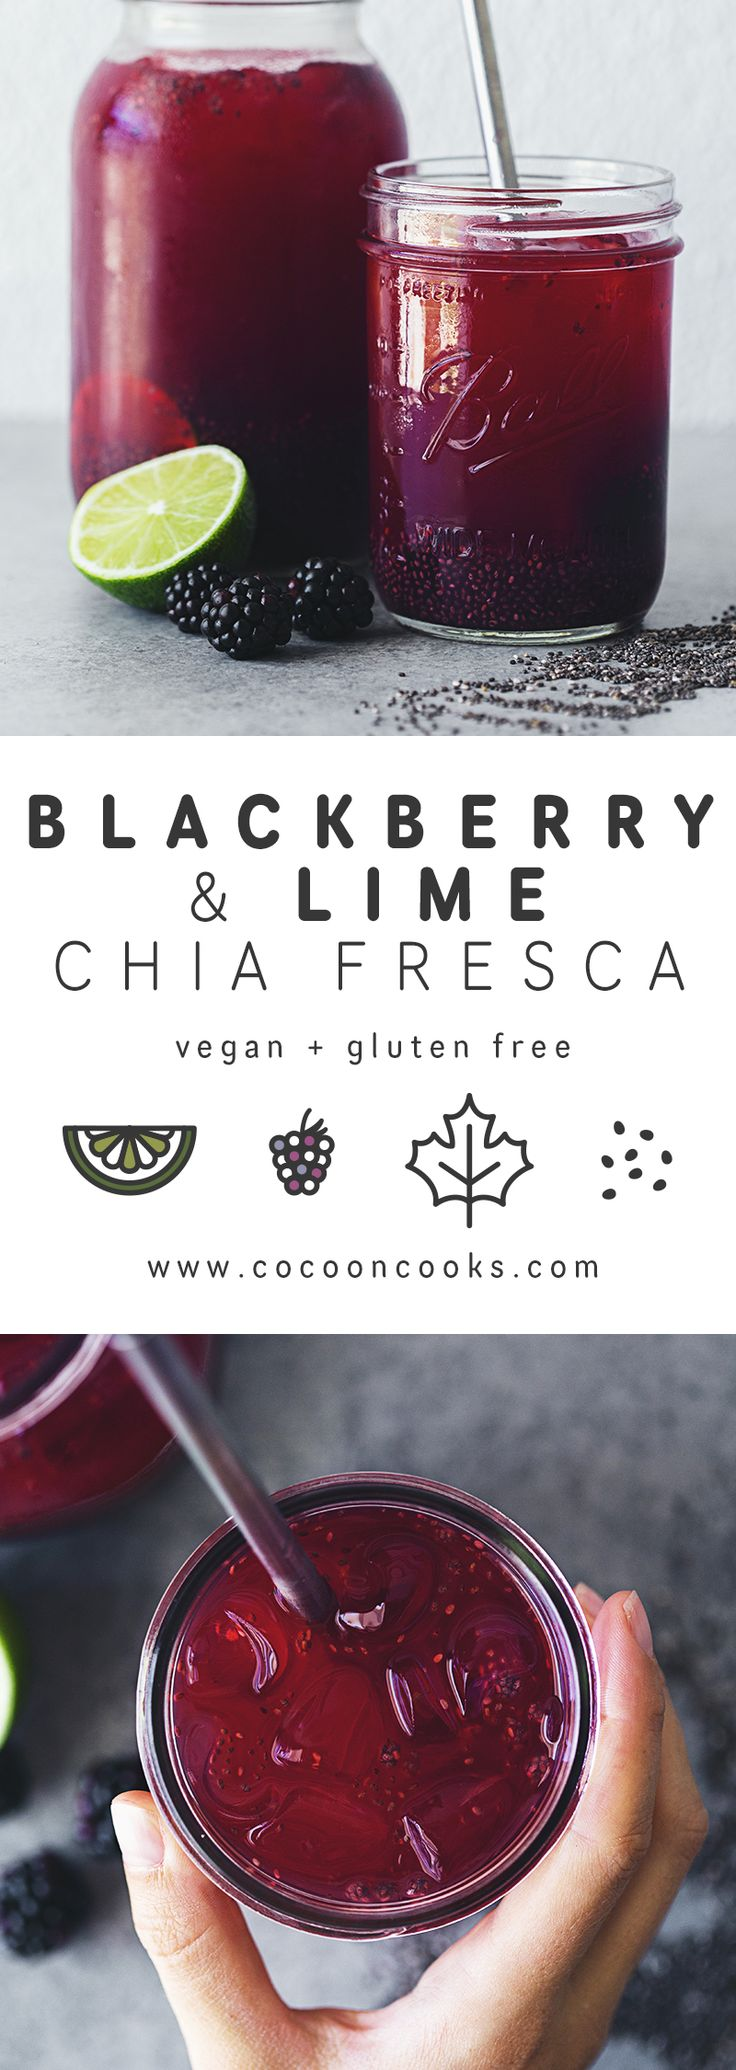 Quench your thirst with this Blackberry & Lime Chia Fresca! Delicious, refreshing and healthy. #contest